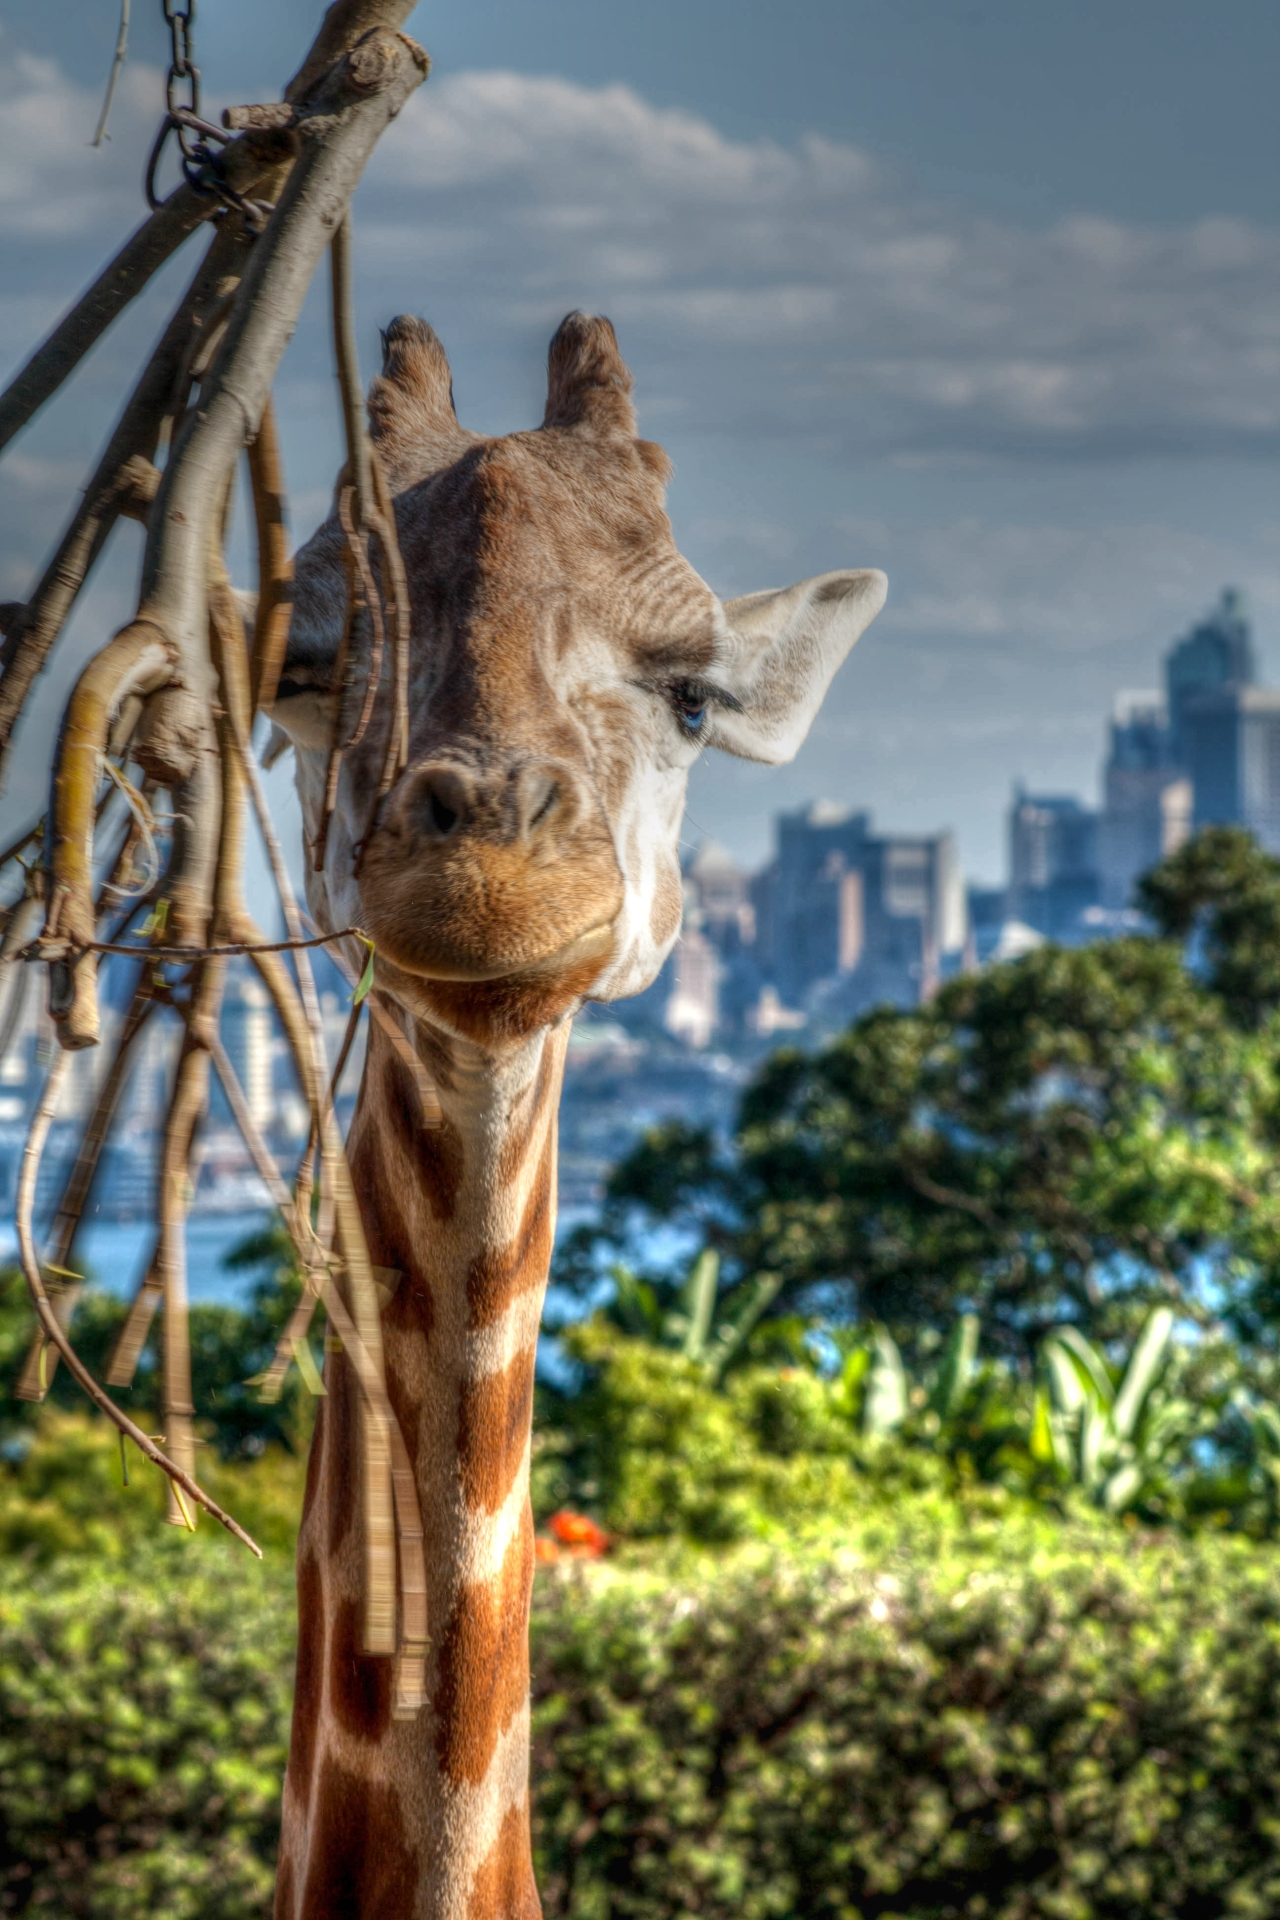 A Visit to the Zoo – Sydney 2014